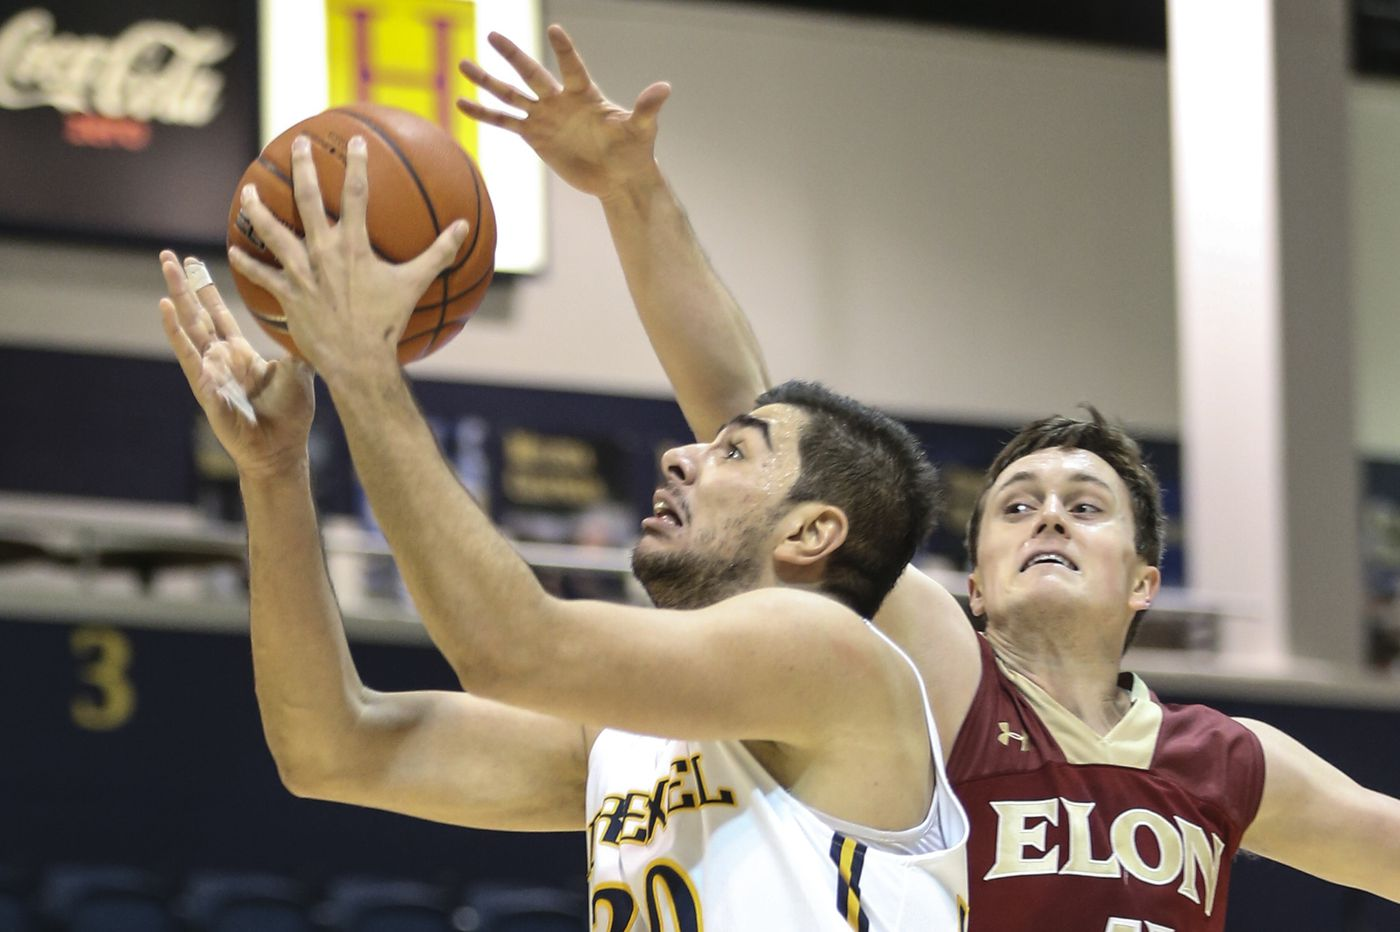 Drexel basketball gets first CAA win of season, snapping four-game losing streak against Elon